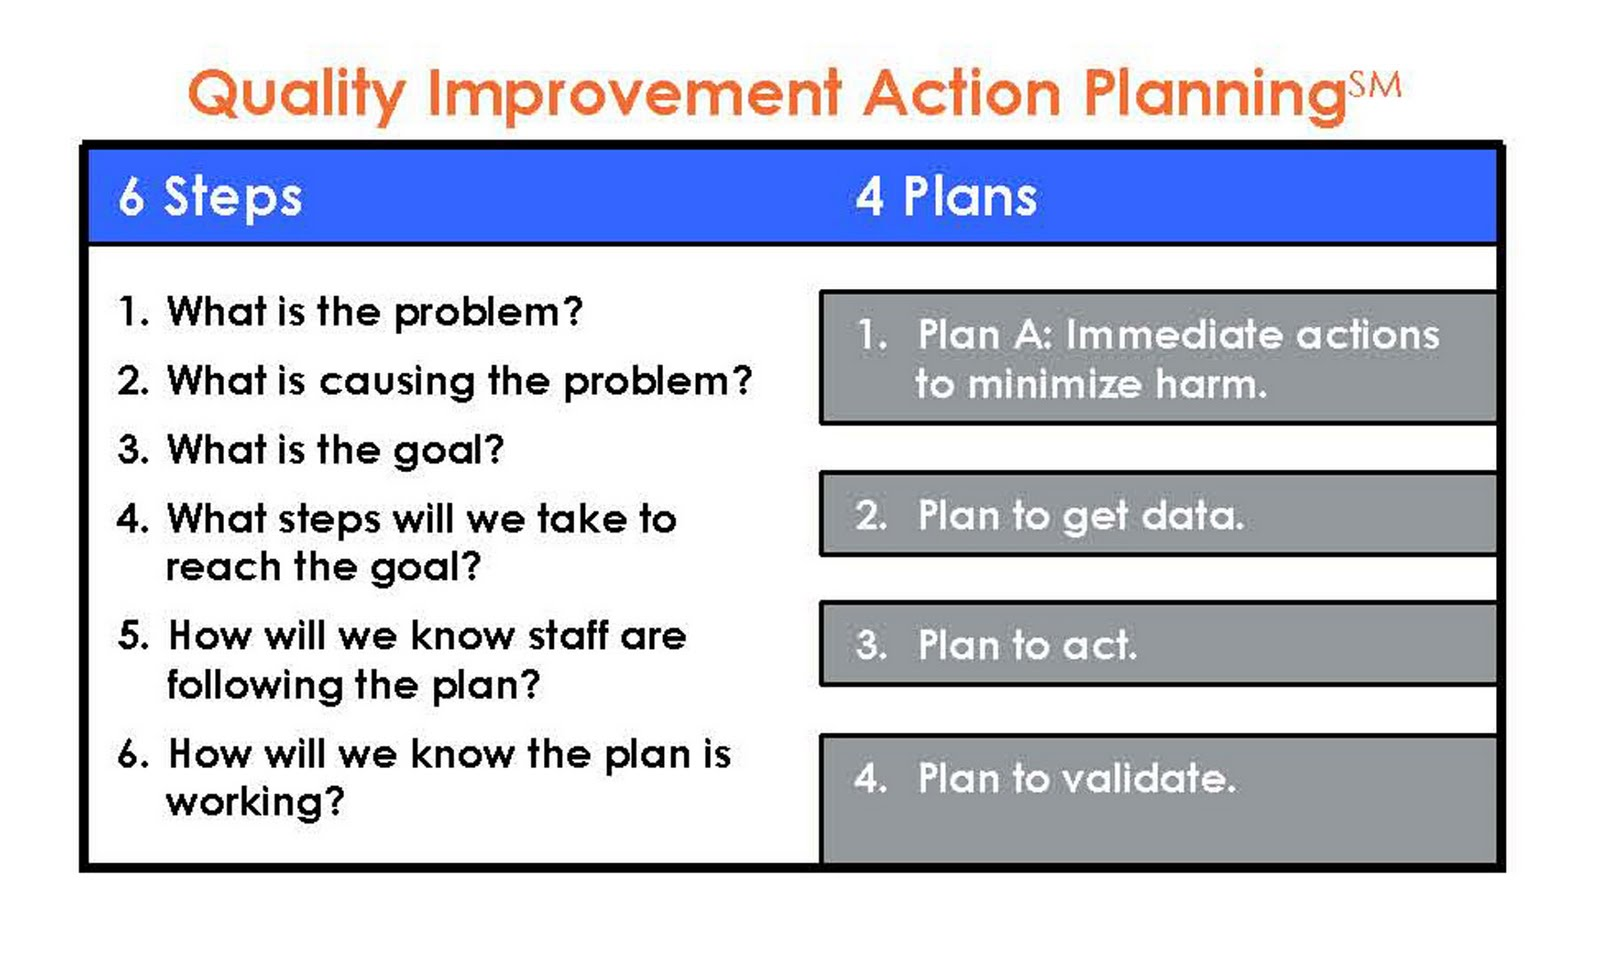 template for quality improvement plan - on improving healthcare quality and compliance on quality